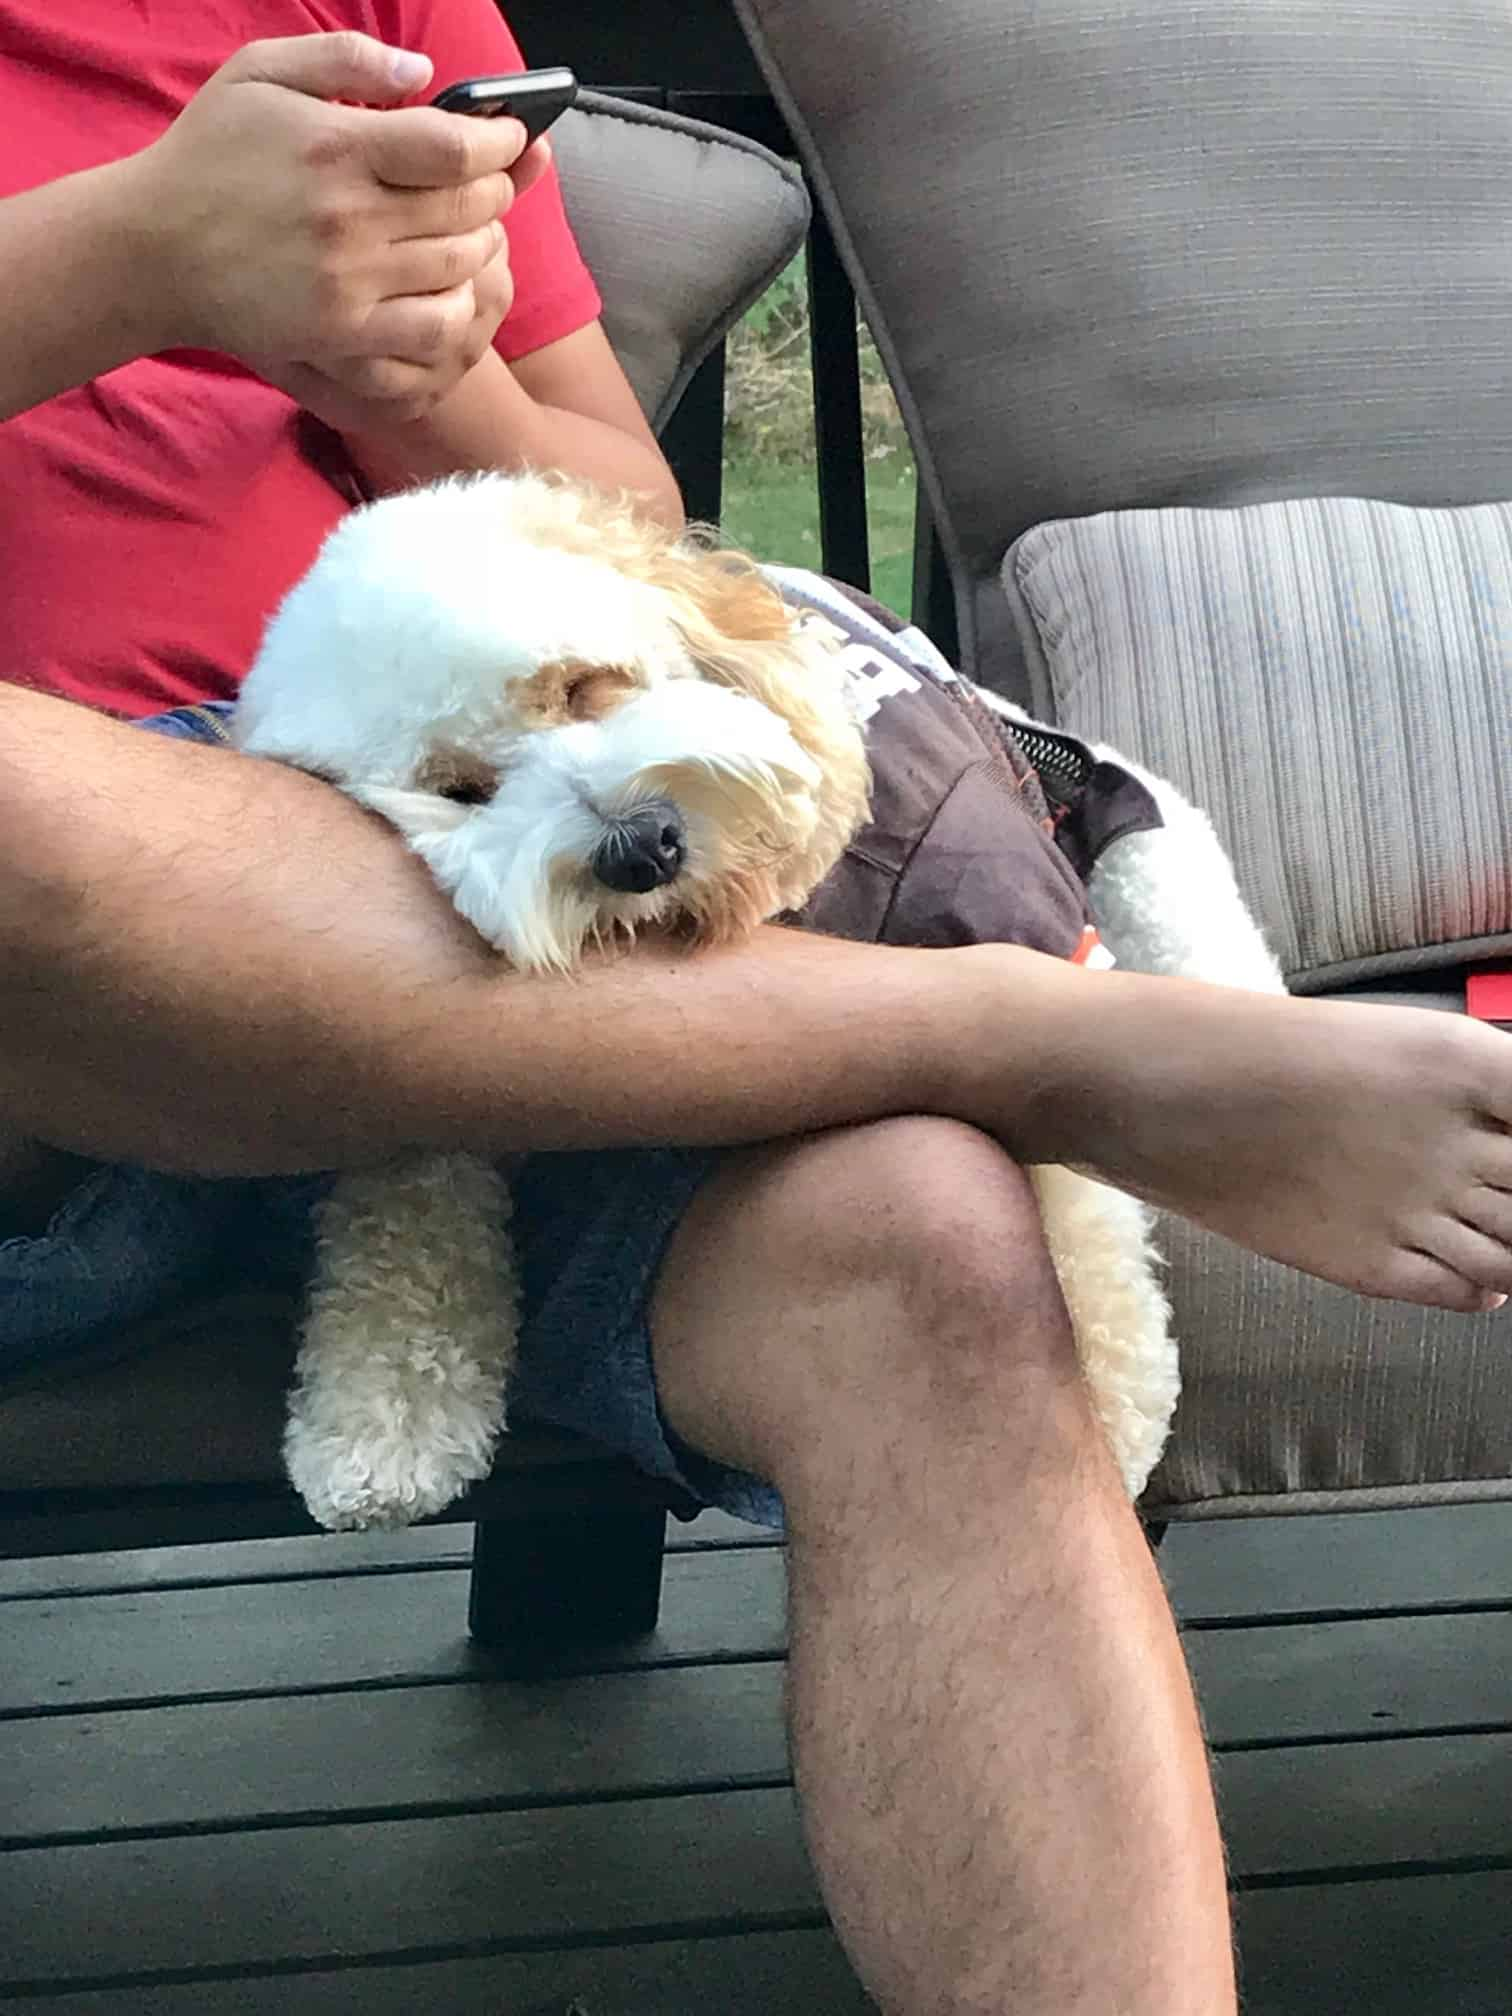 Cockapoo puppy in browns jersey adorably asleep over man's legs